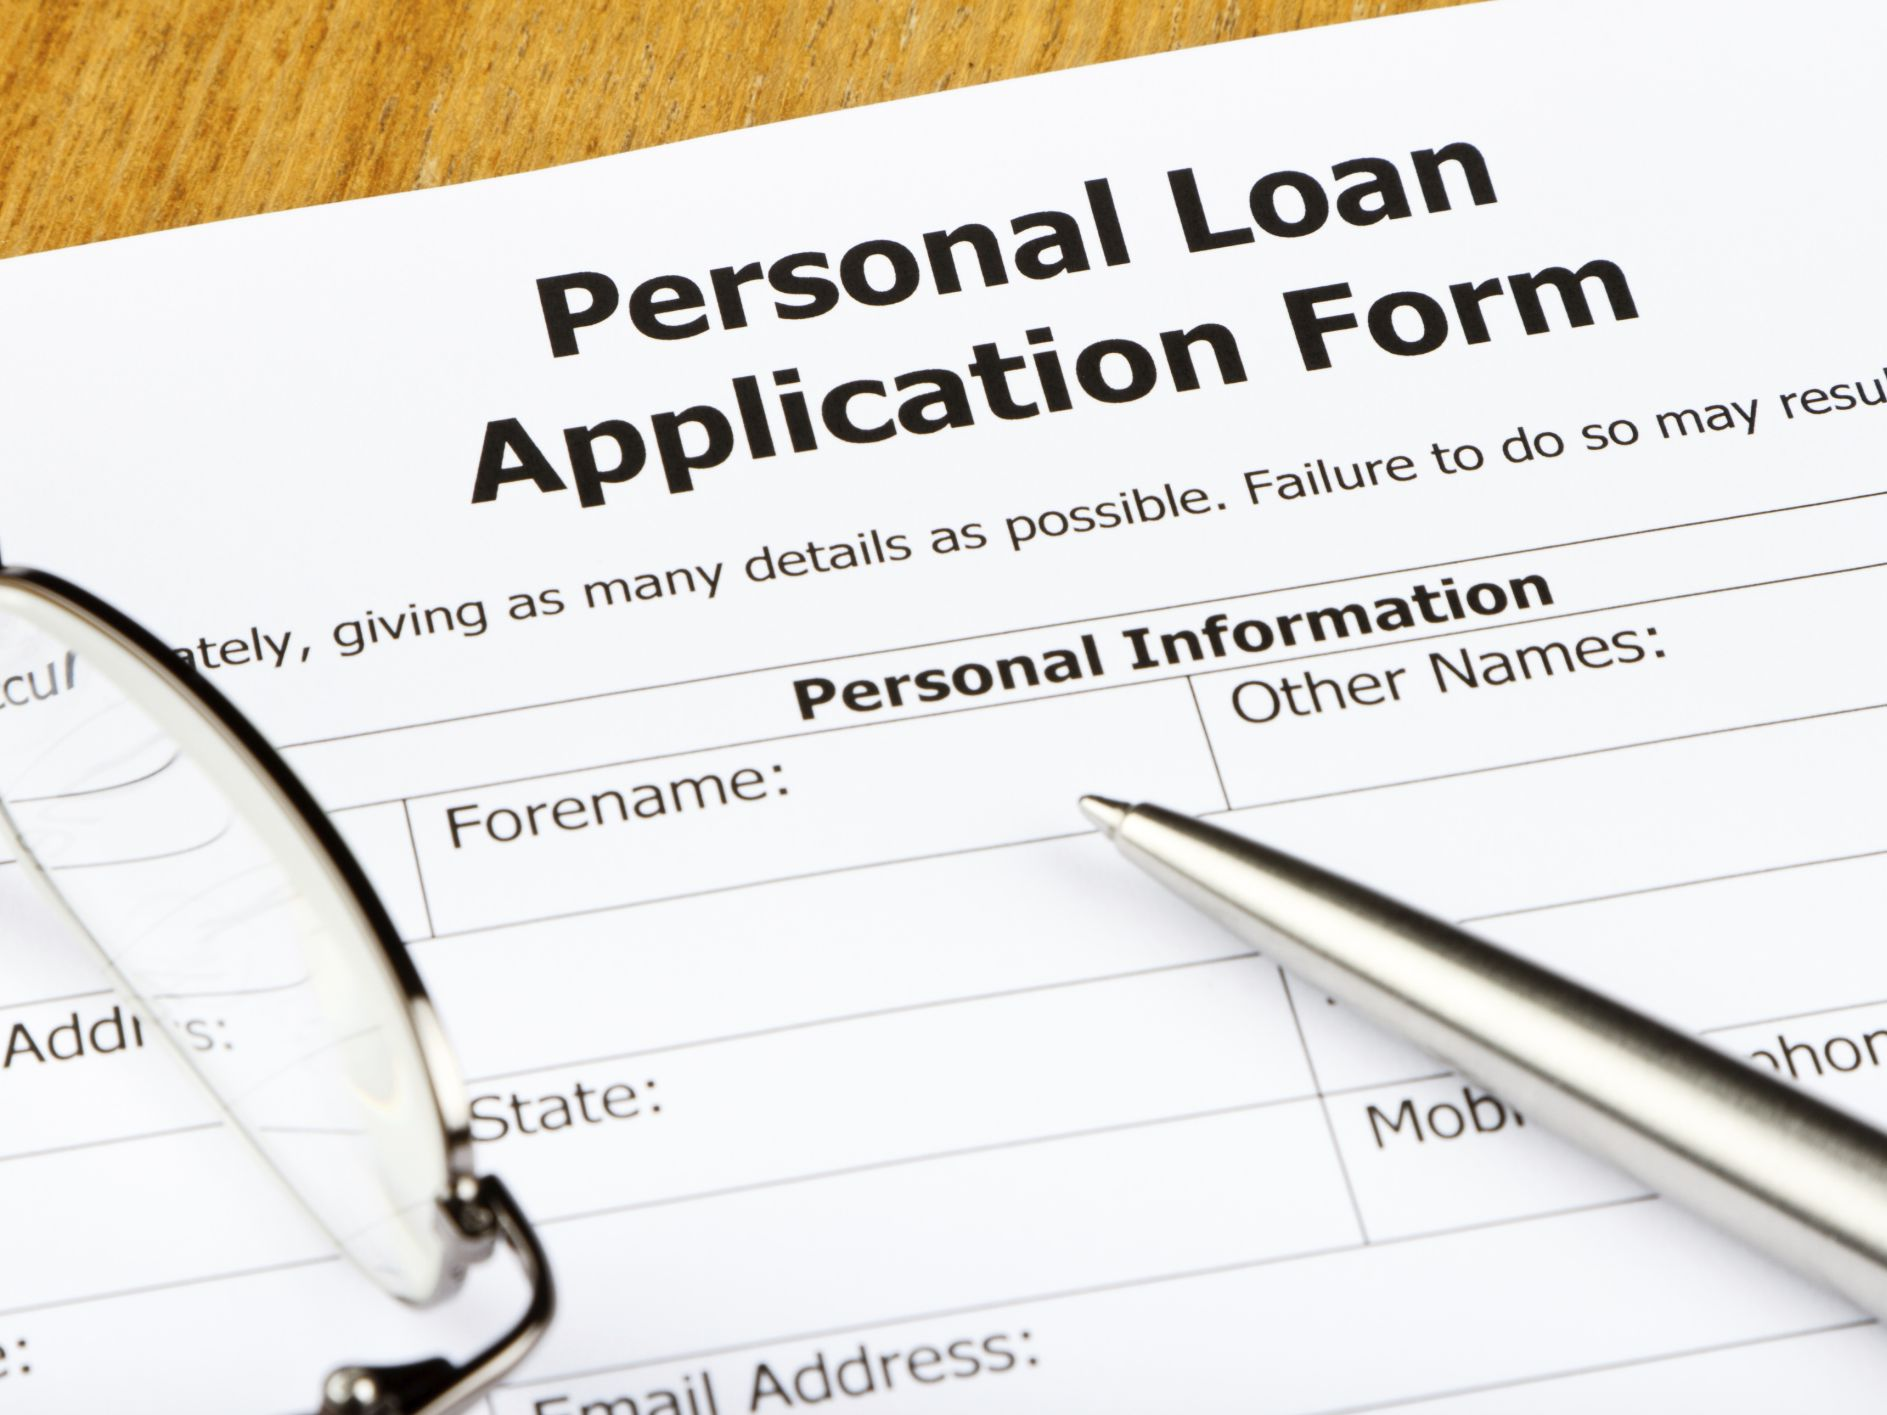 Re-Applying For a Personal Loan? Here are 5 Things to Consider